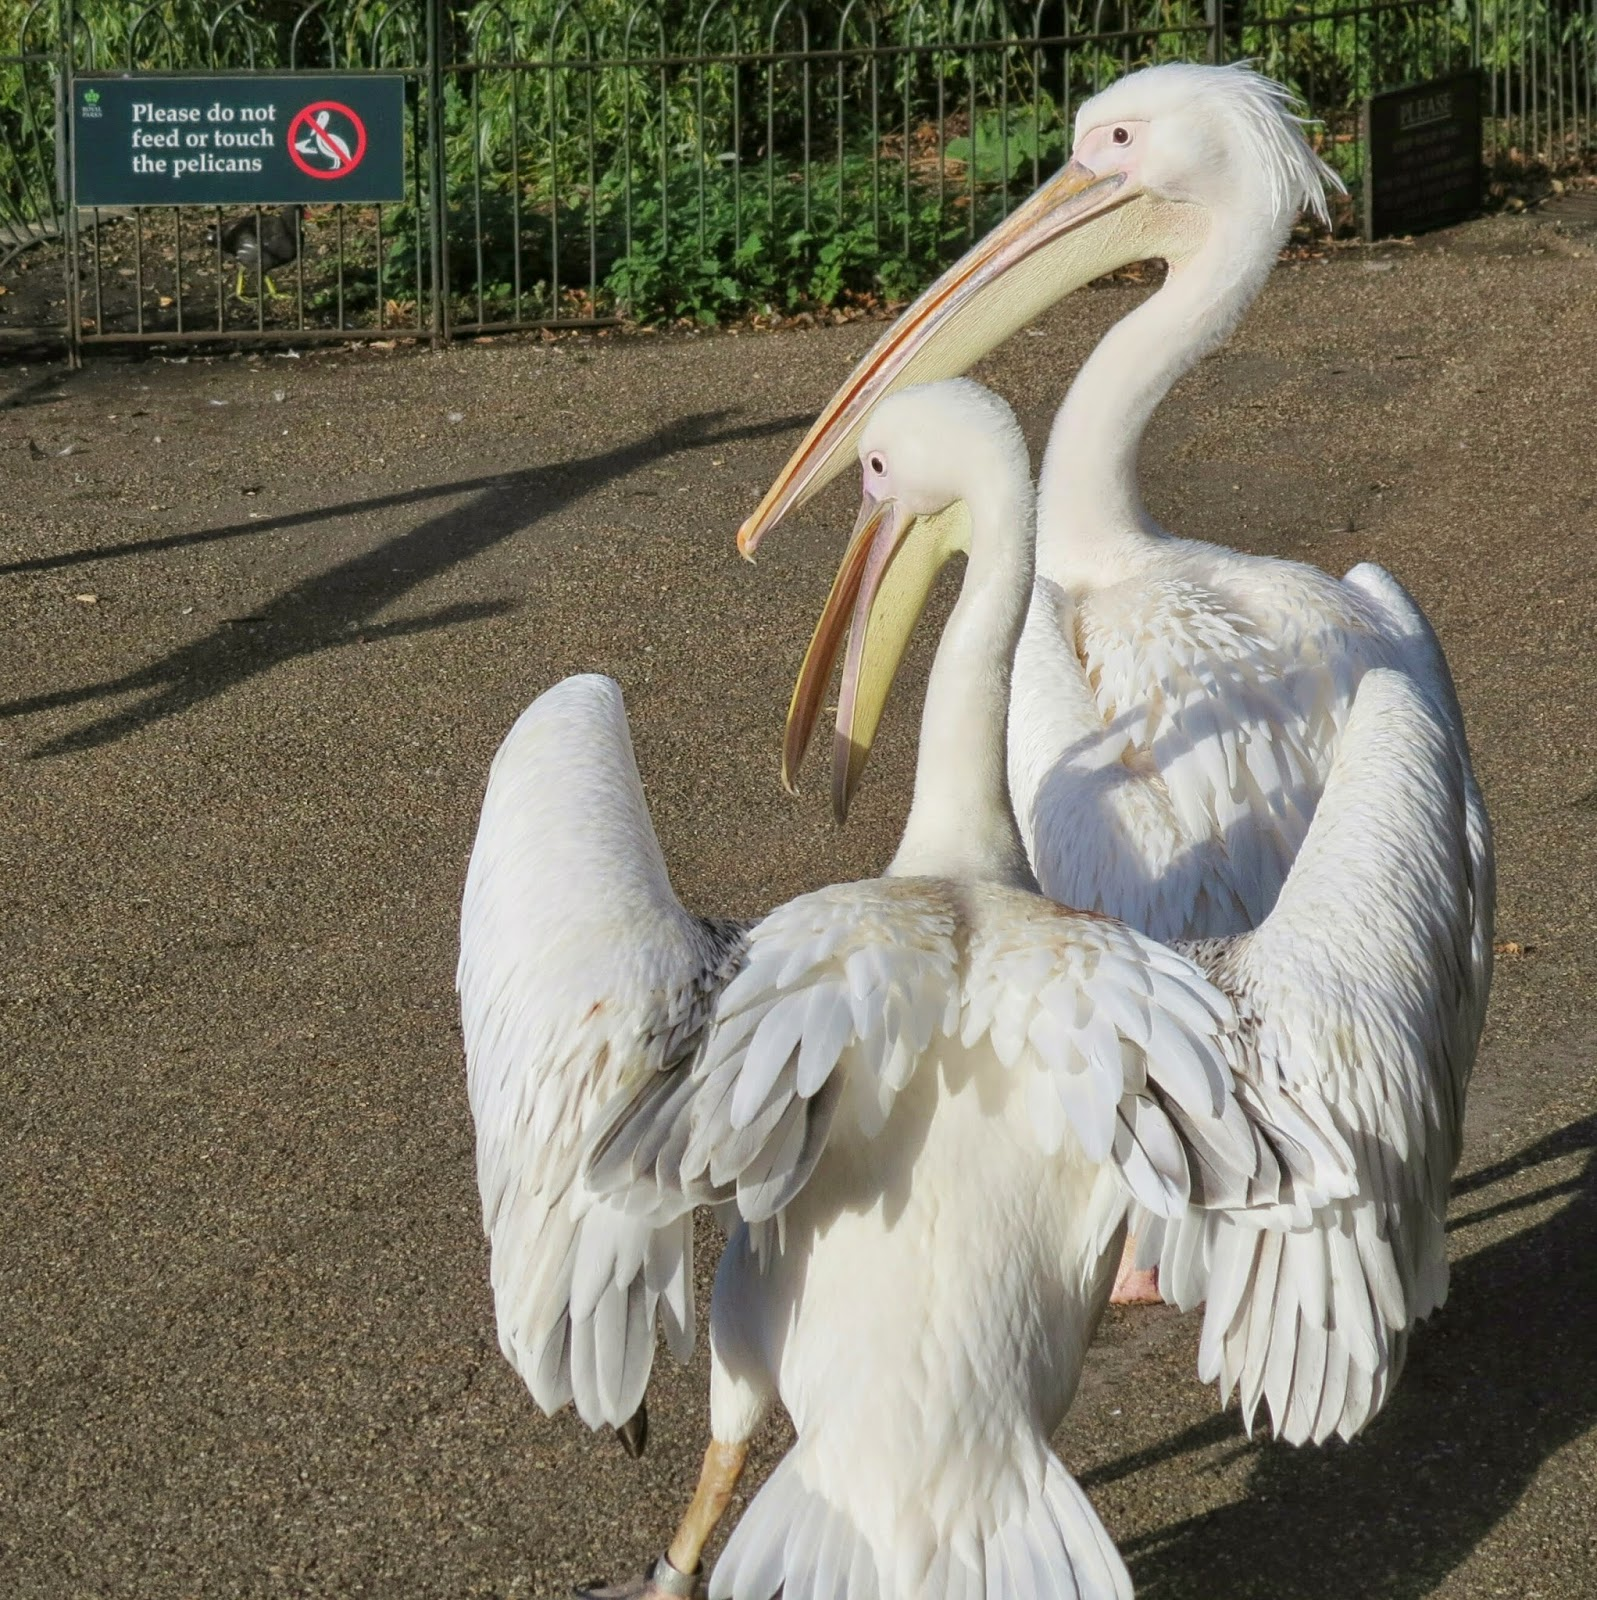 St. James Park Pelicans